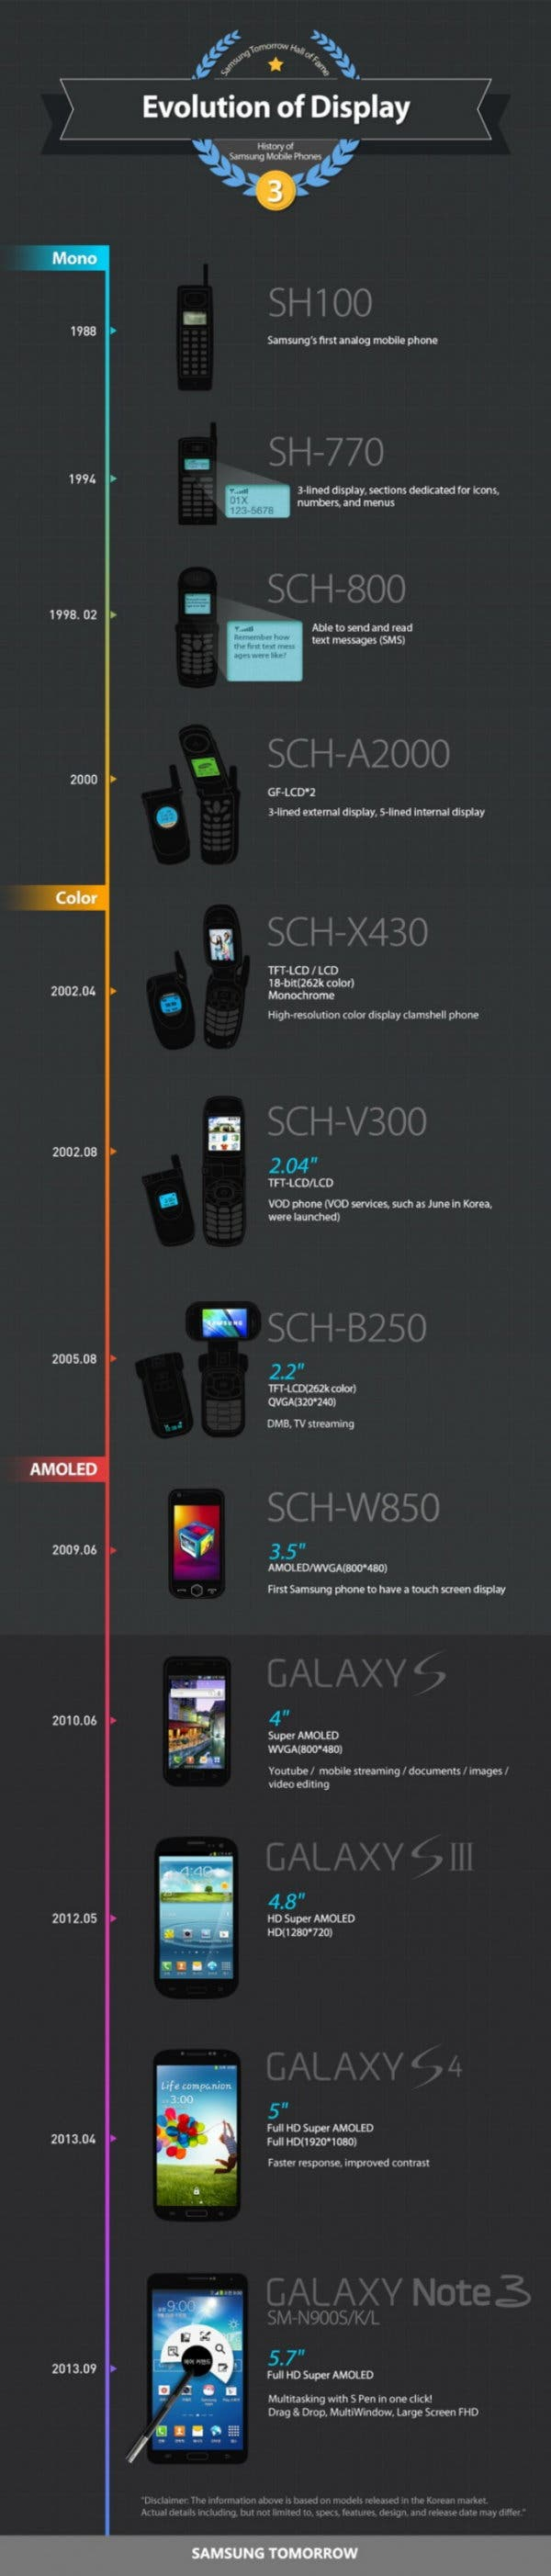 Evolution des Displays Samsung